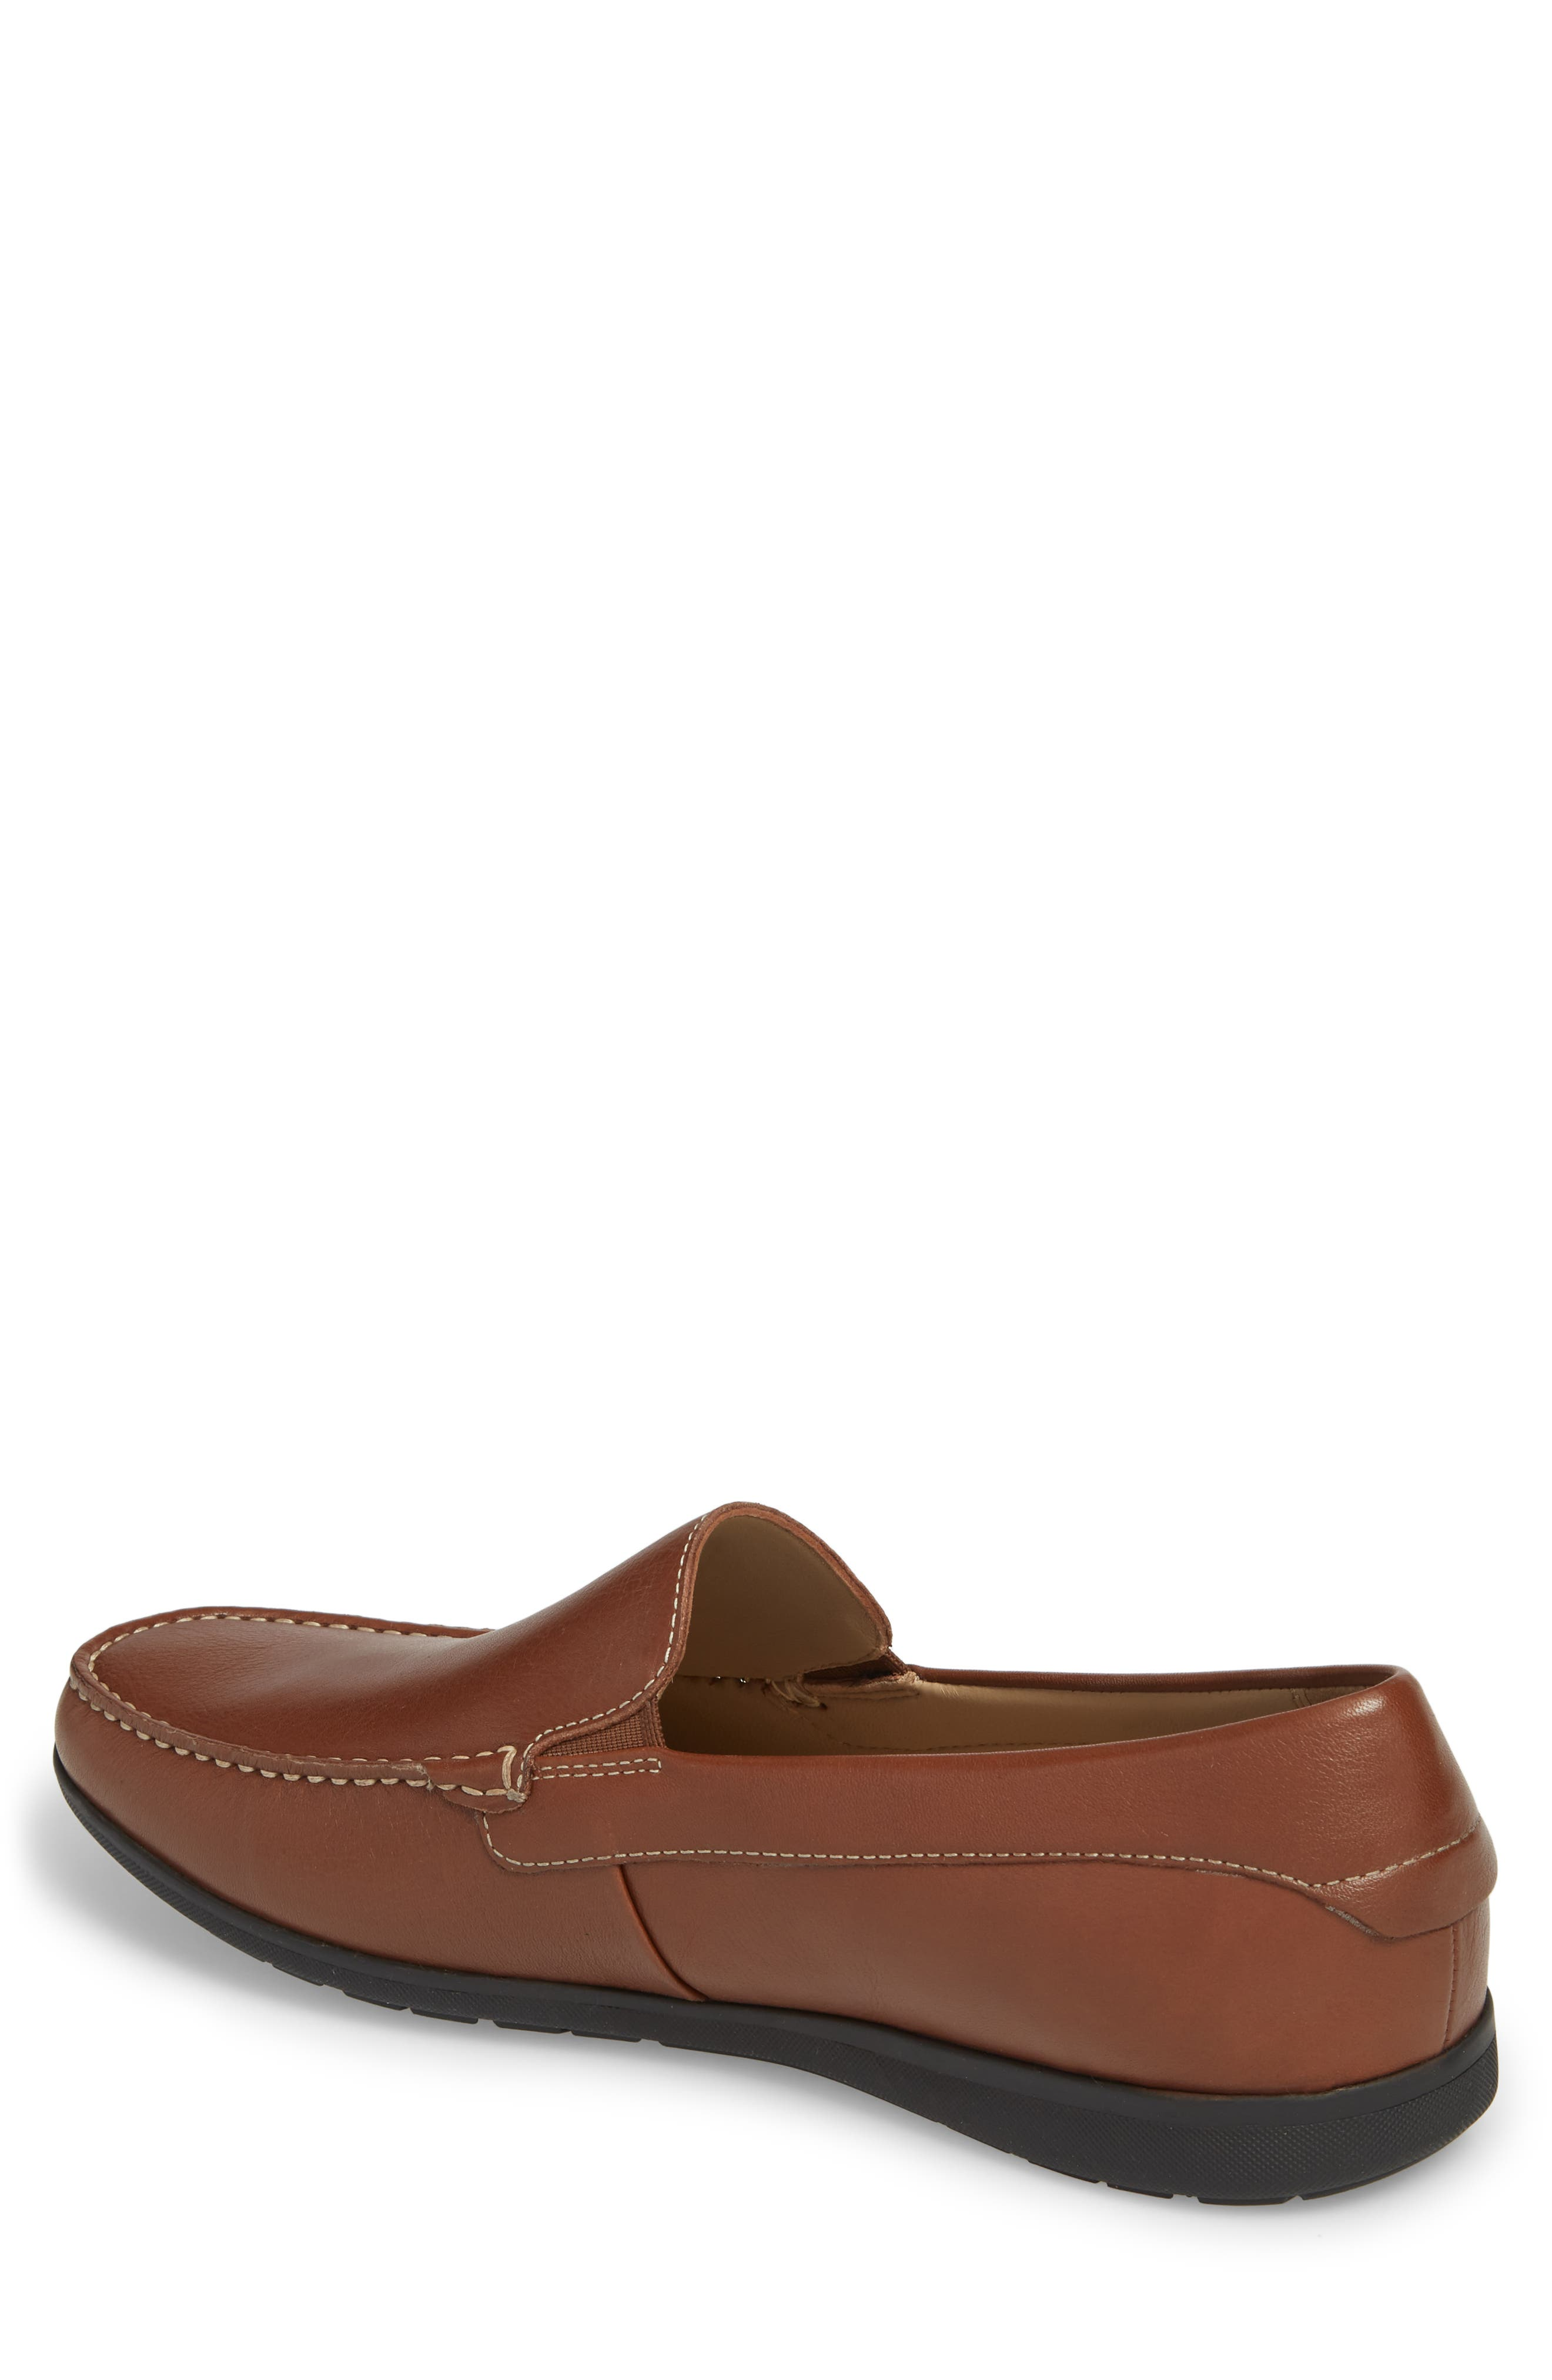 Classic Loafer,                             Alternate thumbnail 2, color,                             Lion